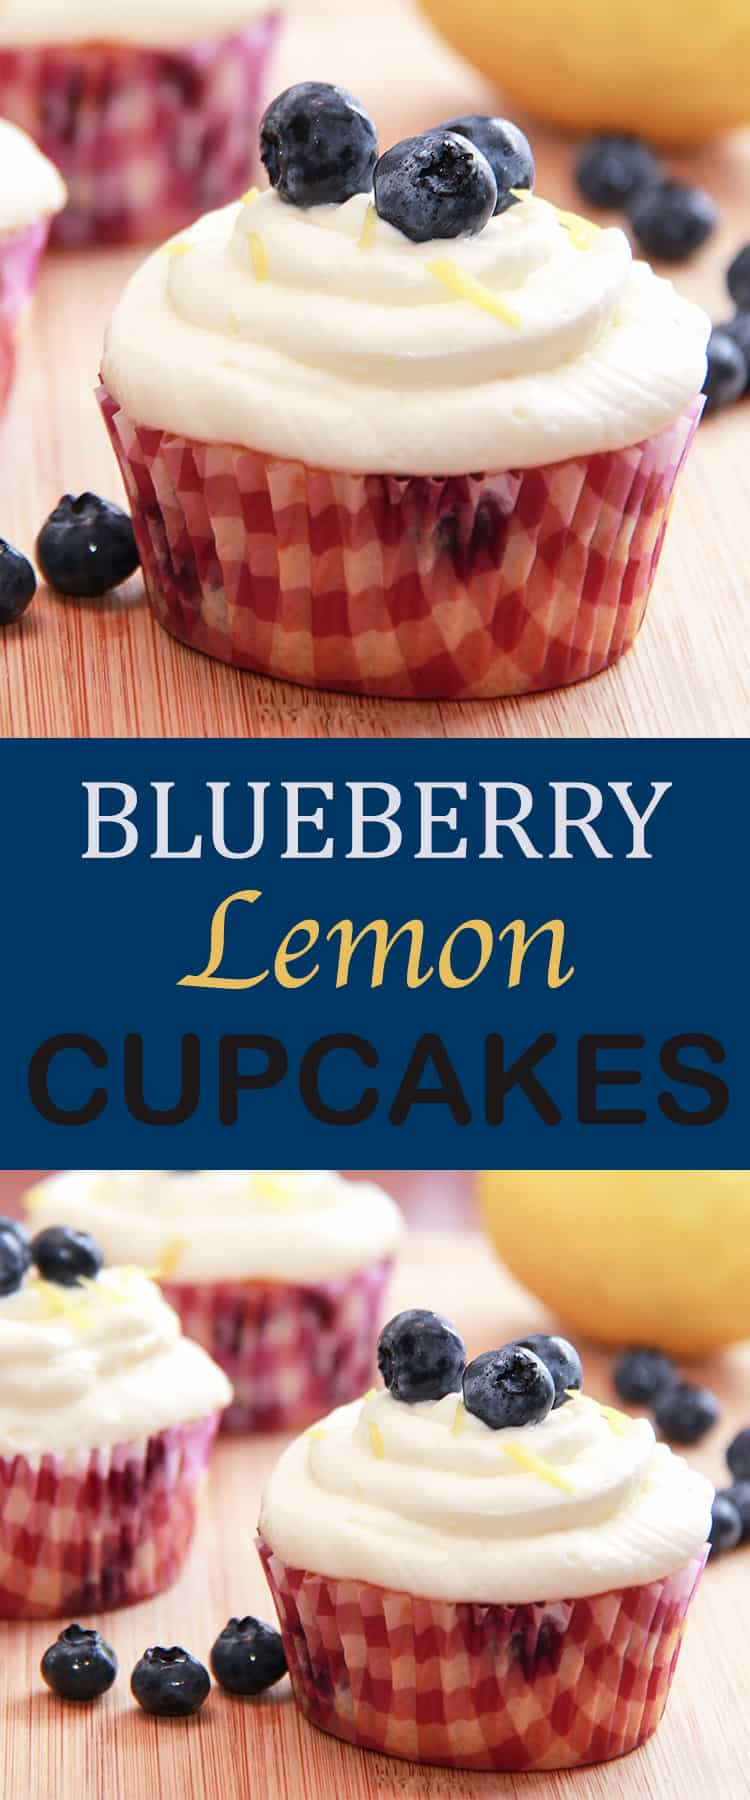 Blueberry Lemon Cupcakes - moist and fluffy cake and delicious cream cheese icing.